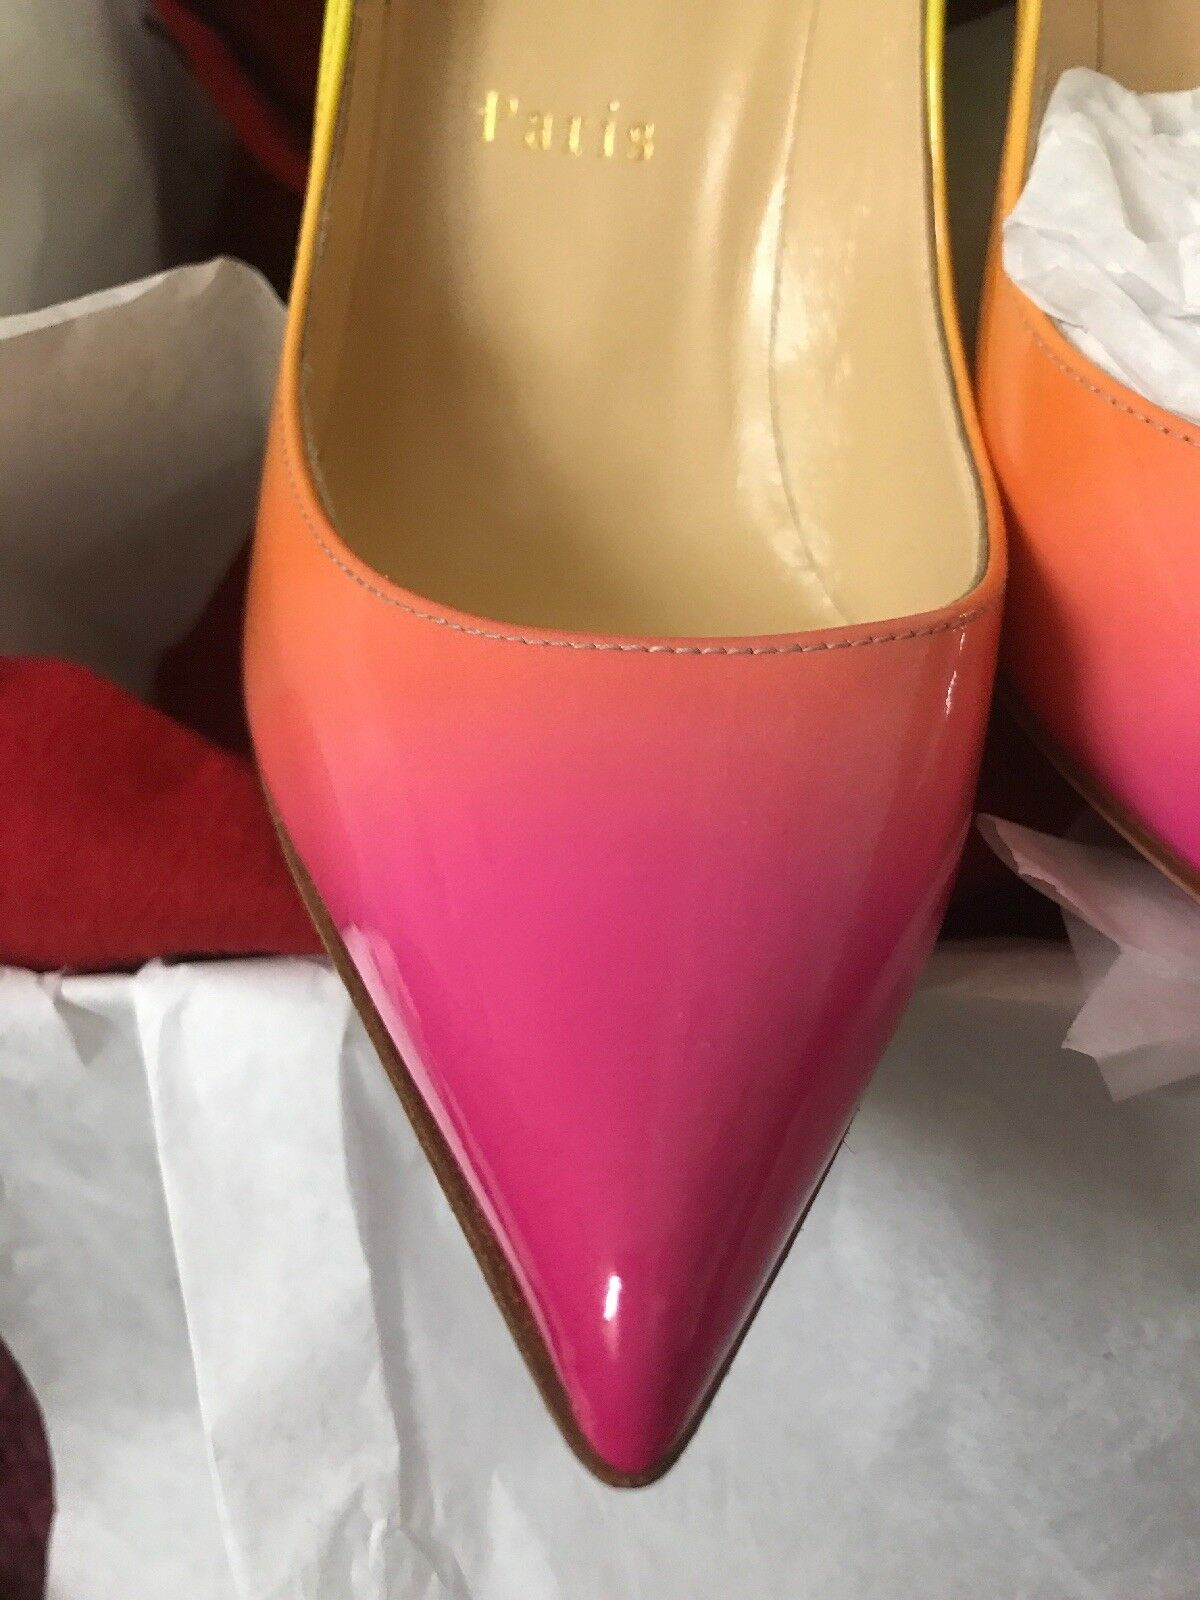 the best attitude 0eb37 d68d0 New Christian Louboutin Pigalle Follies Rainbow Heel Pump ...